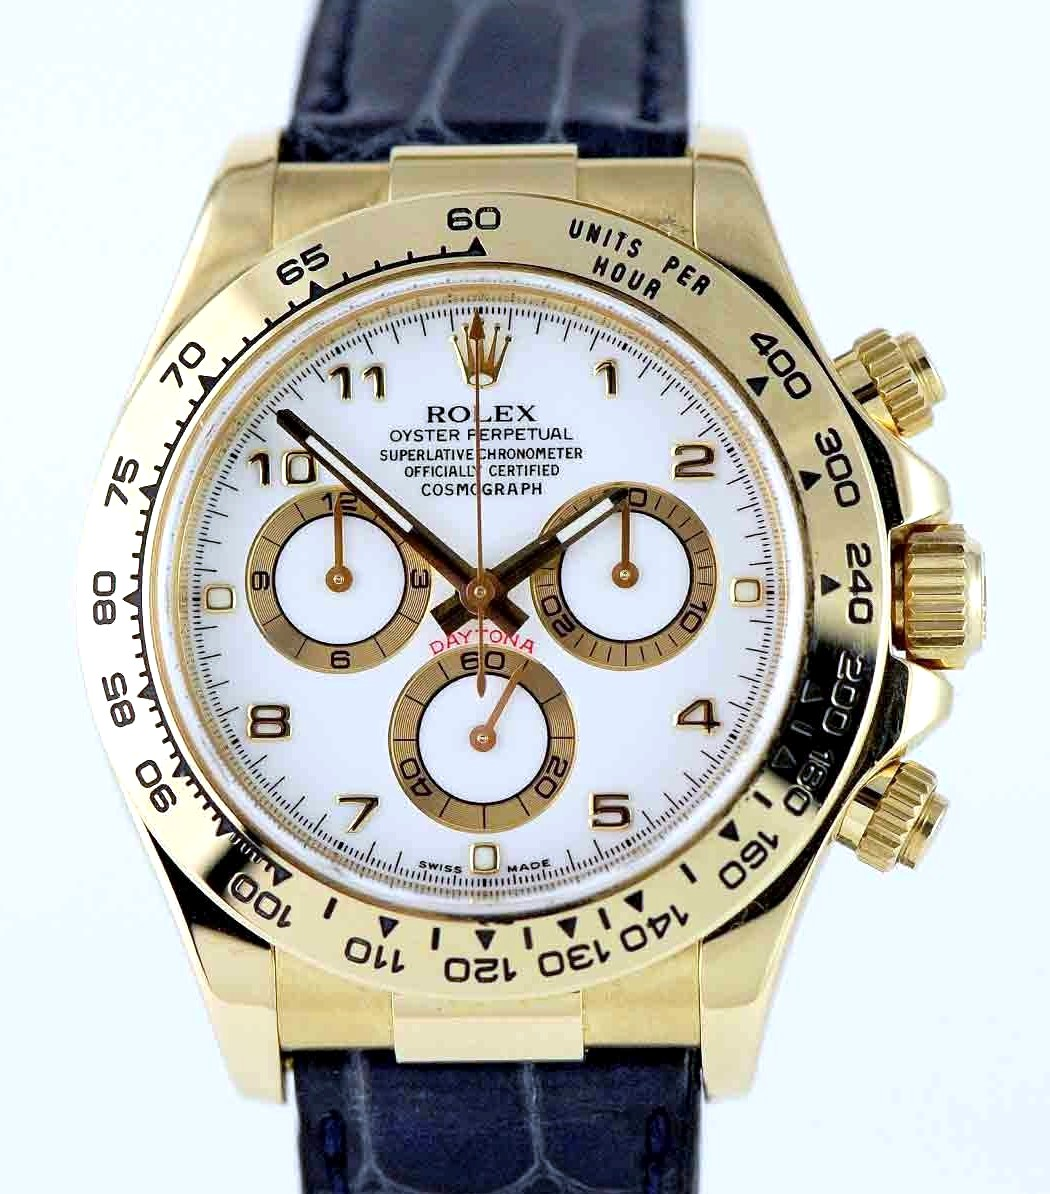 Rolex Oyster Perpetual Cosmosgraph Daytona Ref: 116518